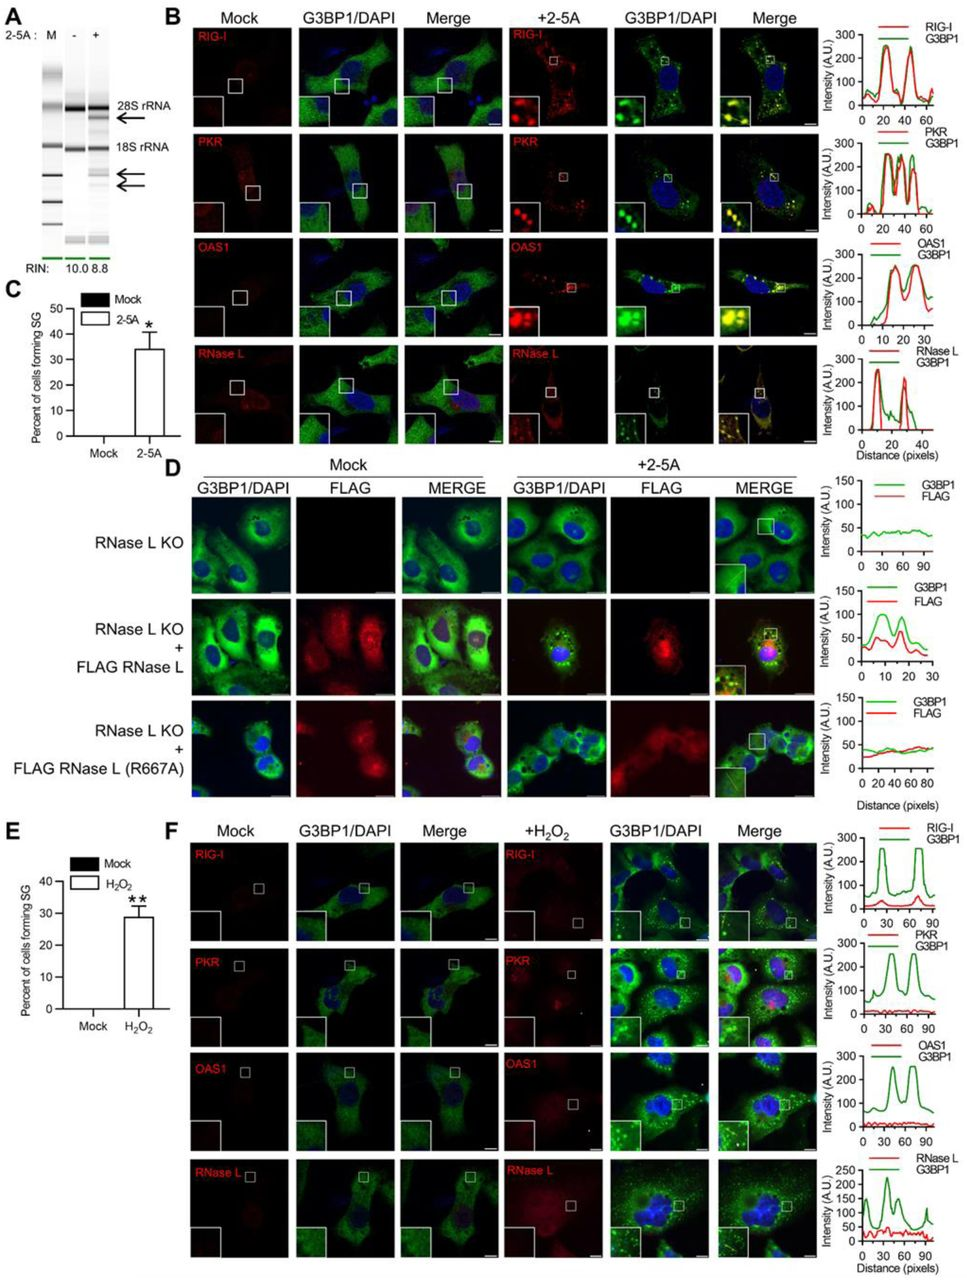 Activation of RNase L induces antiviral stress granules formation. HT1080 cells were transfected with 2–5A (10 µM) for 8h and (A) RNase L-mediated cleavage of rRNA (arrows) was analyzed on RNA chips using the Agilent Bioanalyzer 2100, RNA Integrity Number (RIN) is shown, (B) cells were fixed and stained with G3BP1 and indicated antiviral proteins, the magnified images correspond to the boxed regions, (right) intensity profiles of G3BP1 and antiviral proteins along the plotted lines as analyzed by Image J line scan analysis and (C) the percentage of cells forming stress granules were quantitated. (D) RNase L KO cells were either mock transfected or transfected with FLAG-WT-RNase L or FLAG-R667A-RNase L and immunostained for G3BP1 and FLAG, (right) intensity profiles of G3BP1 and FLAG along the plotted lines as analyzed by Image J line scan analysis. HT1080 cells were treated with H 2 O 2  (1 mM) for 3h and (E) the percentage of cells forming stress granules were quantitated, (F) cells were immunostained with G3BP1 and indicated antiviral proteins (right) intensity profiles of G3BP1 and antiviral proteins along the plotted lines as analyzed by Image J line scan analysis. All experiments included at least 100 cells from three replicates. Scale bars correspond to 10µm. Data are representative of at least three independent experiments. *p